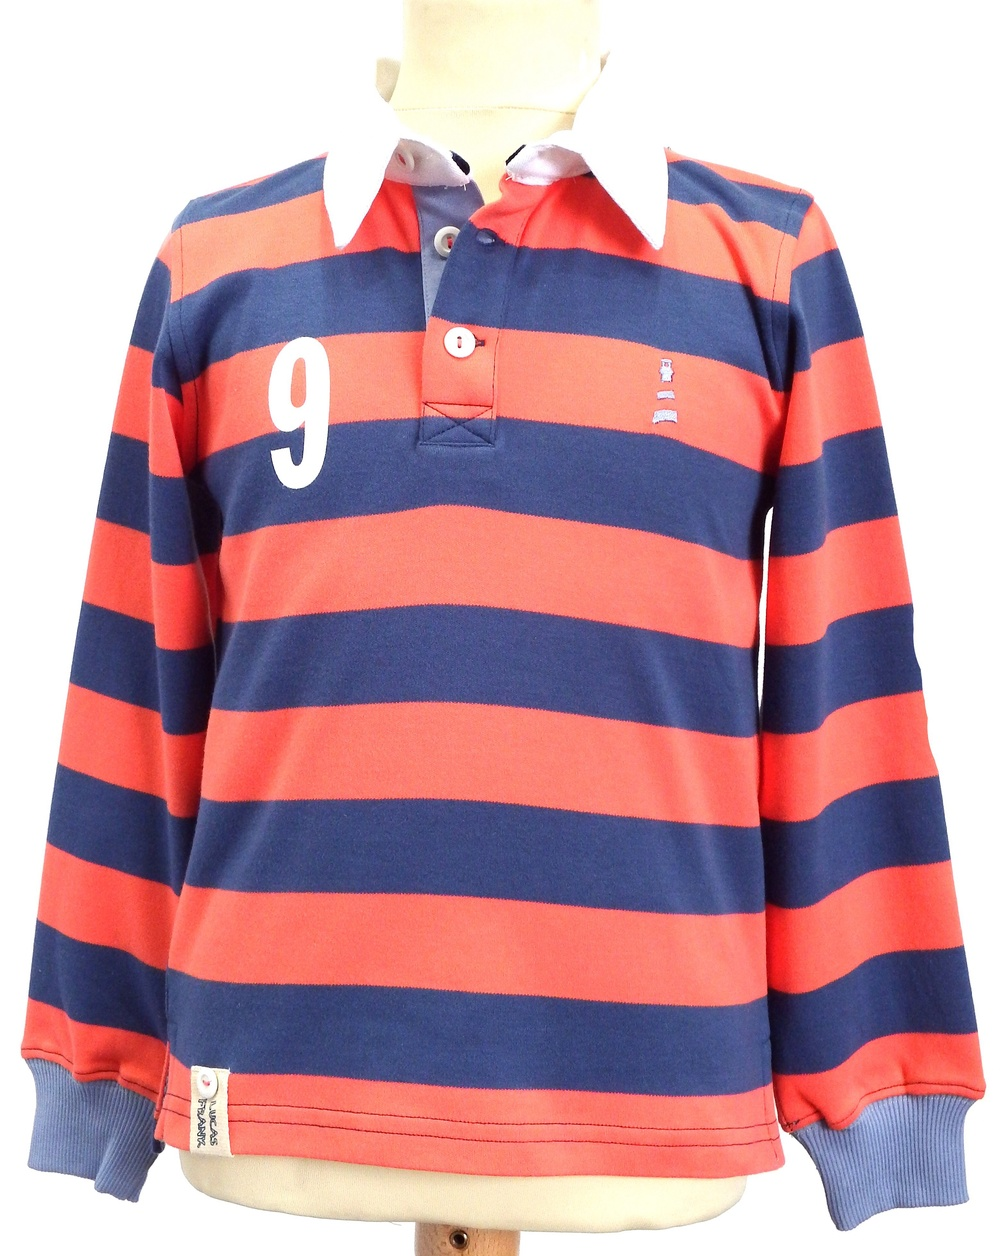 Carmanah Rugby Shirt £40